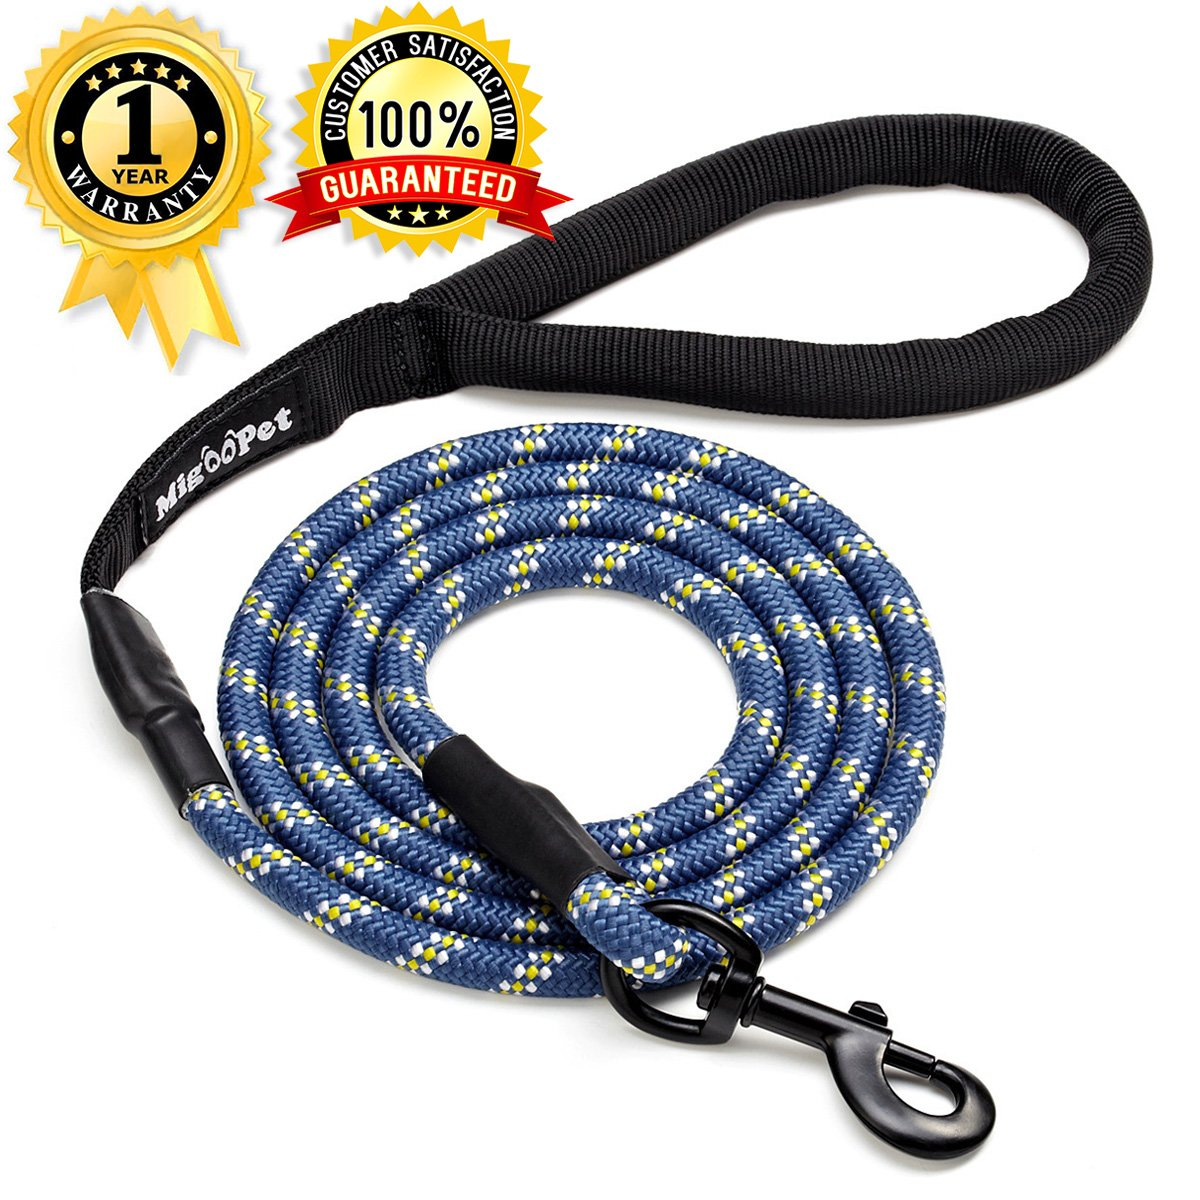 Migoo Pet Strong Heavy Duty Dog Leash Bite Proof Climbing Rope - 6 ft Small to Large Breed Dog Leash With Reflective Stitching - Comfortable Handle Walking Leash For The Largest Pulling Dogs